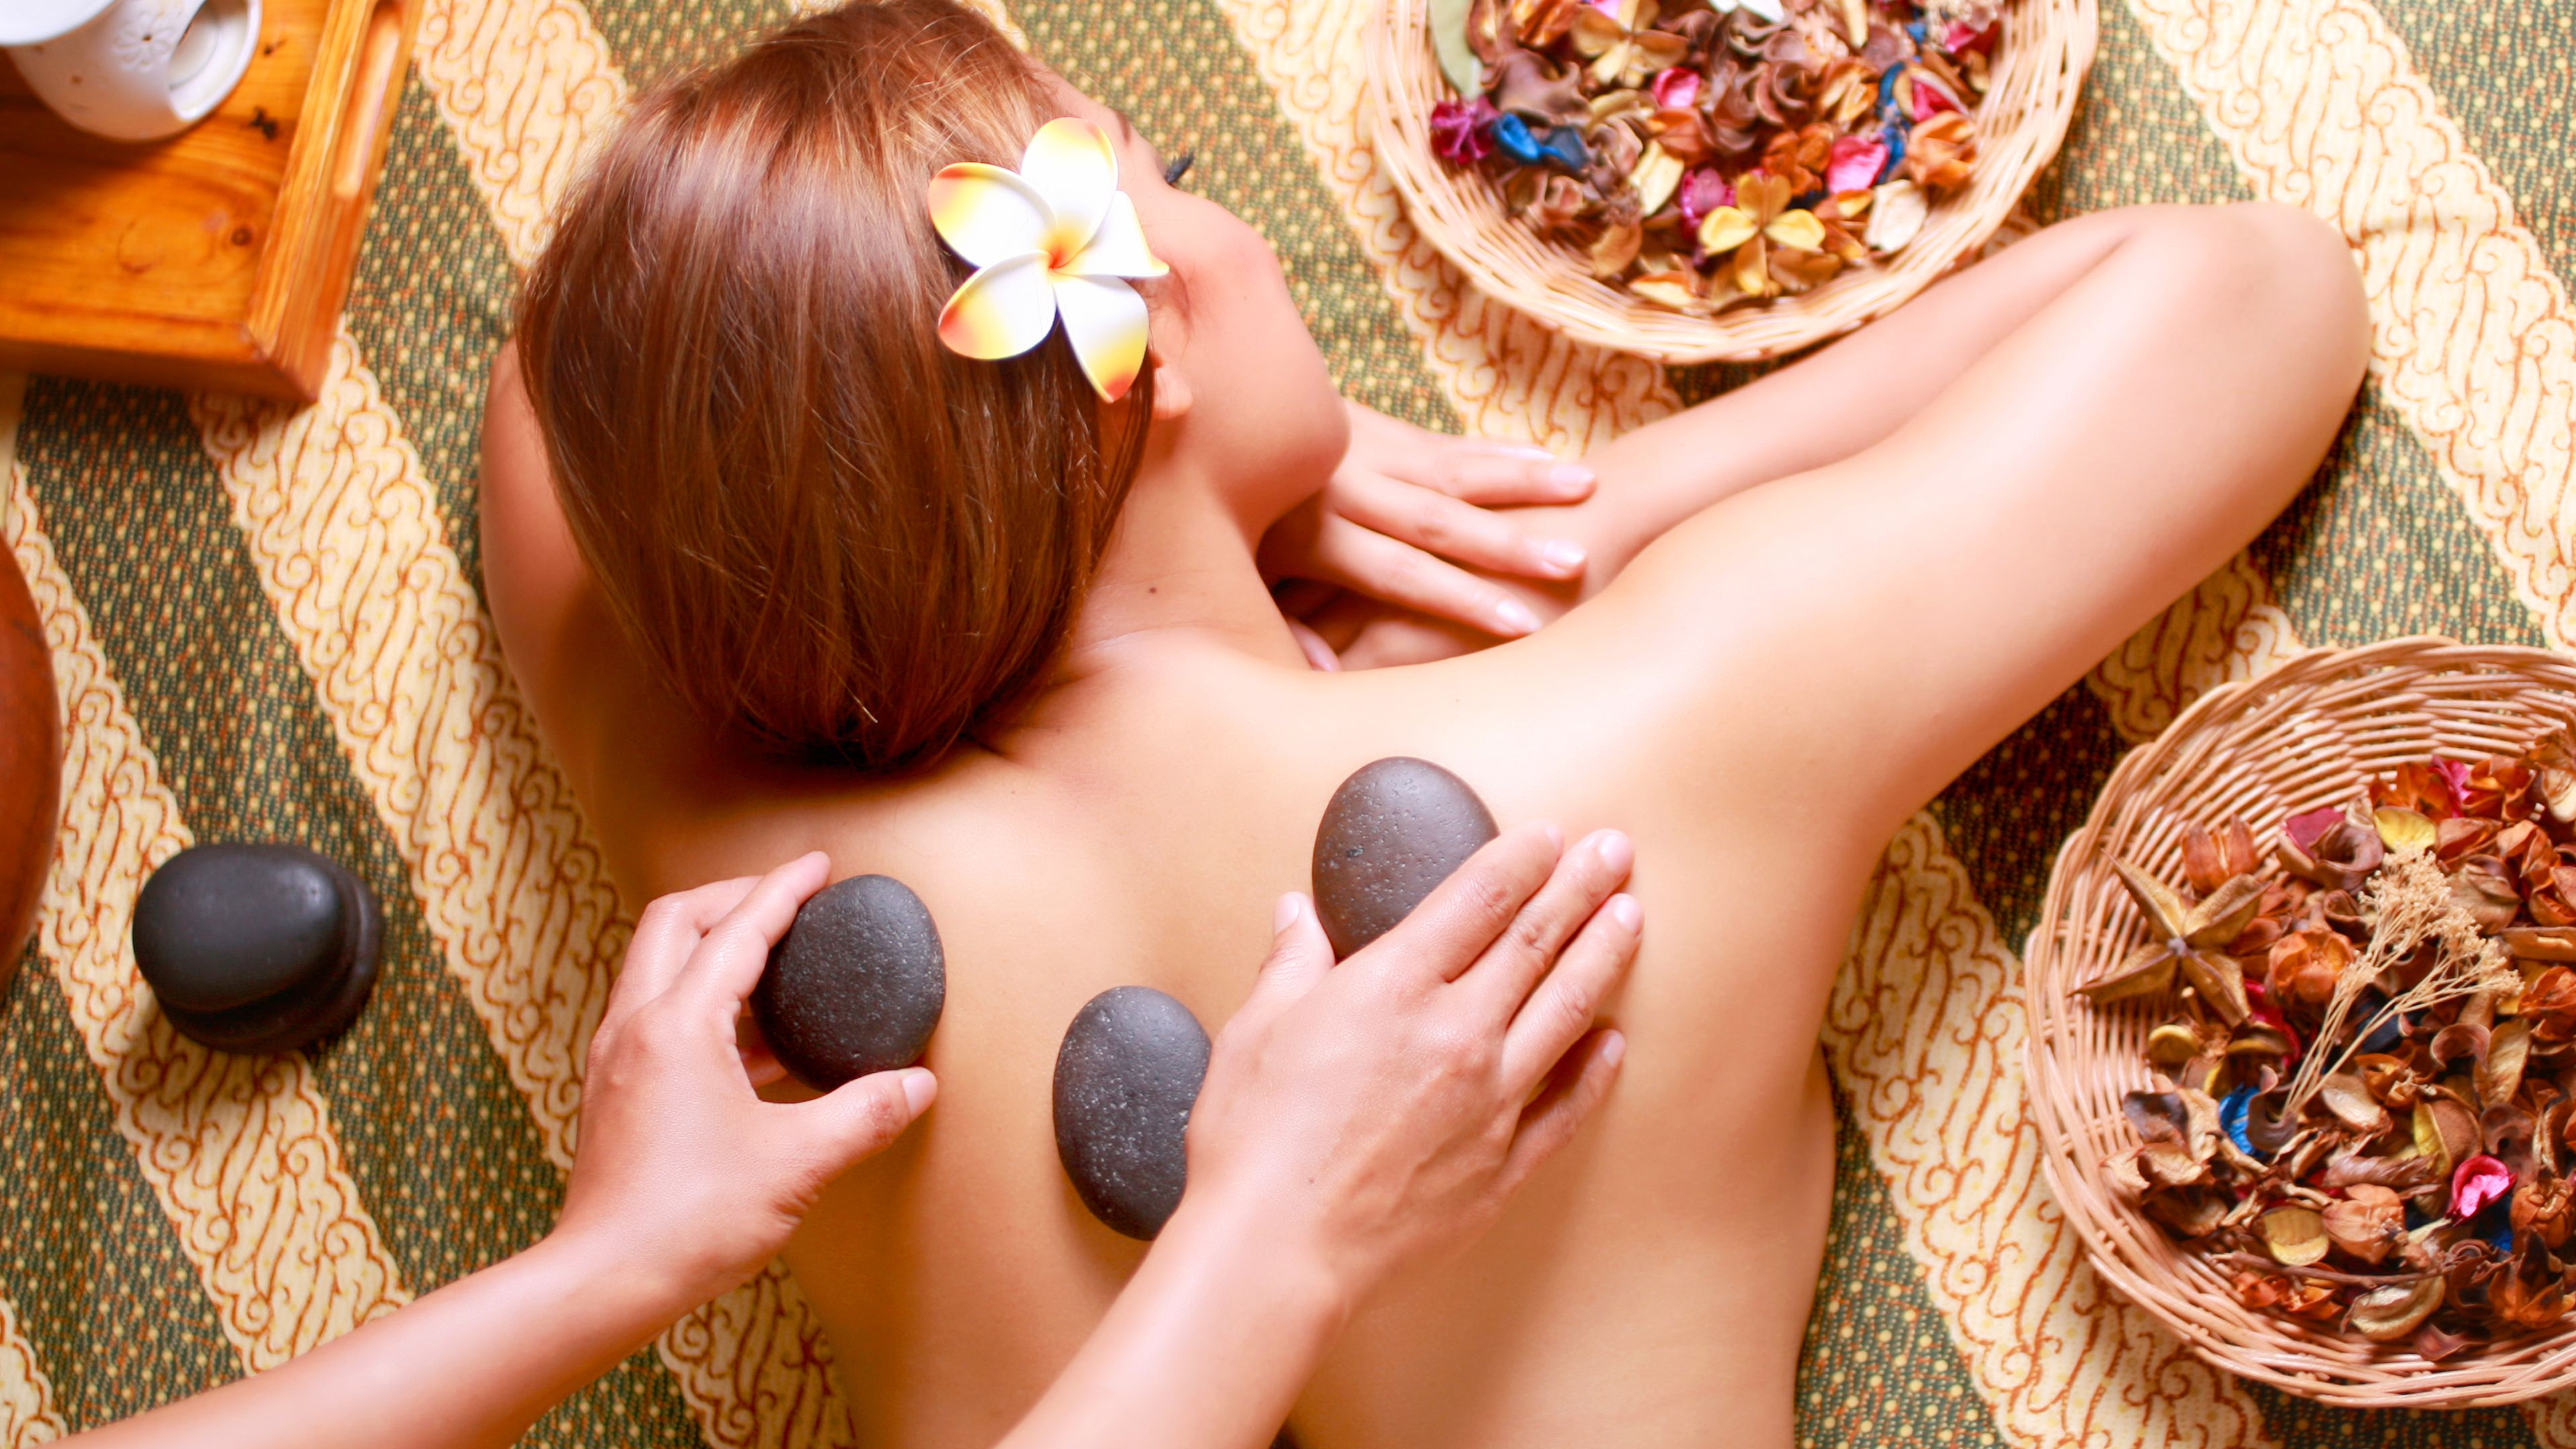 Spa Experience at Spa Central Batam with Ferry Transfer & Lunch